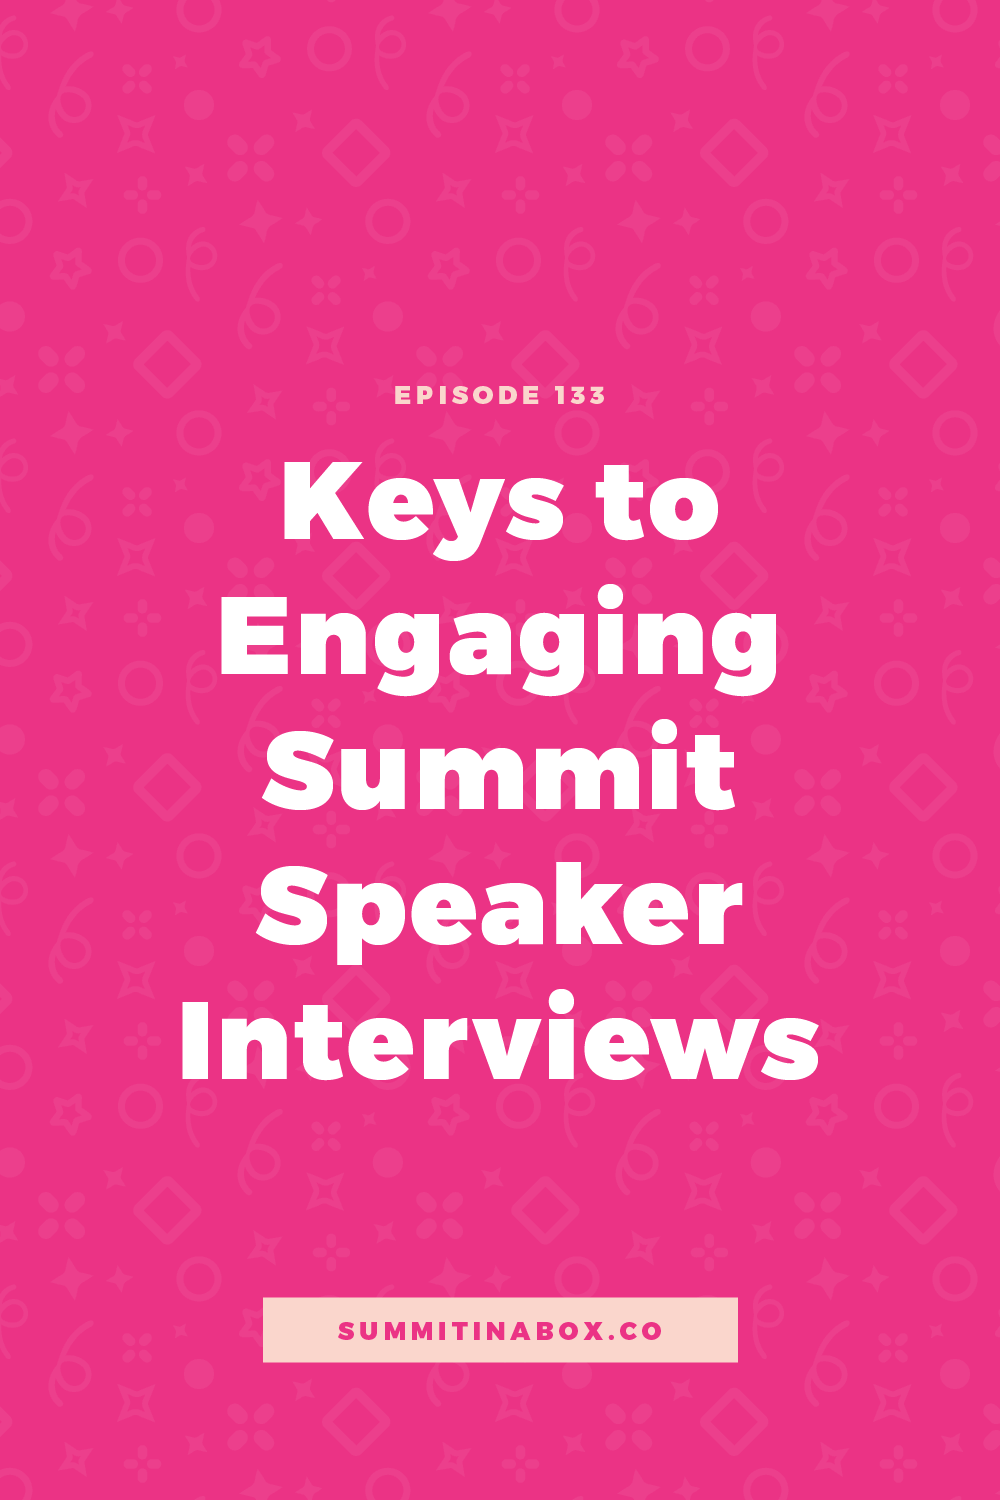 Say goodbye to boring summit speaker interviews. Let's cover top interview mistakes to avoid, how to conduct actionable interviews, and my interview outline.